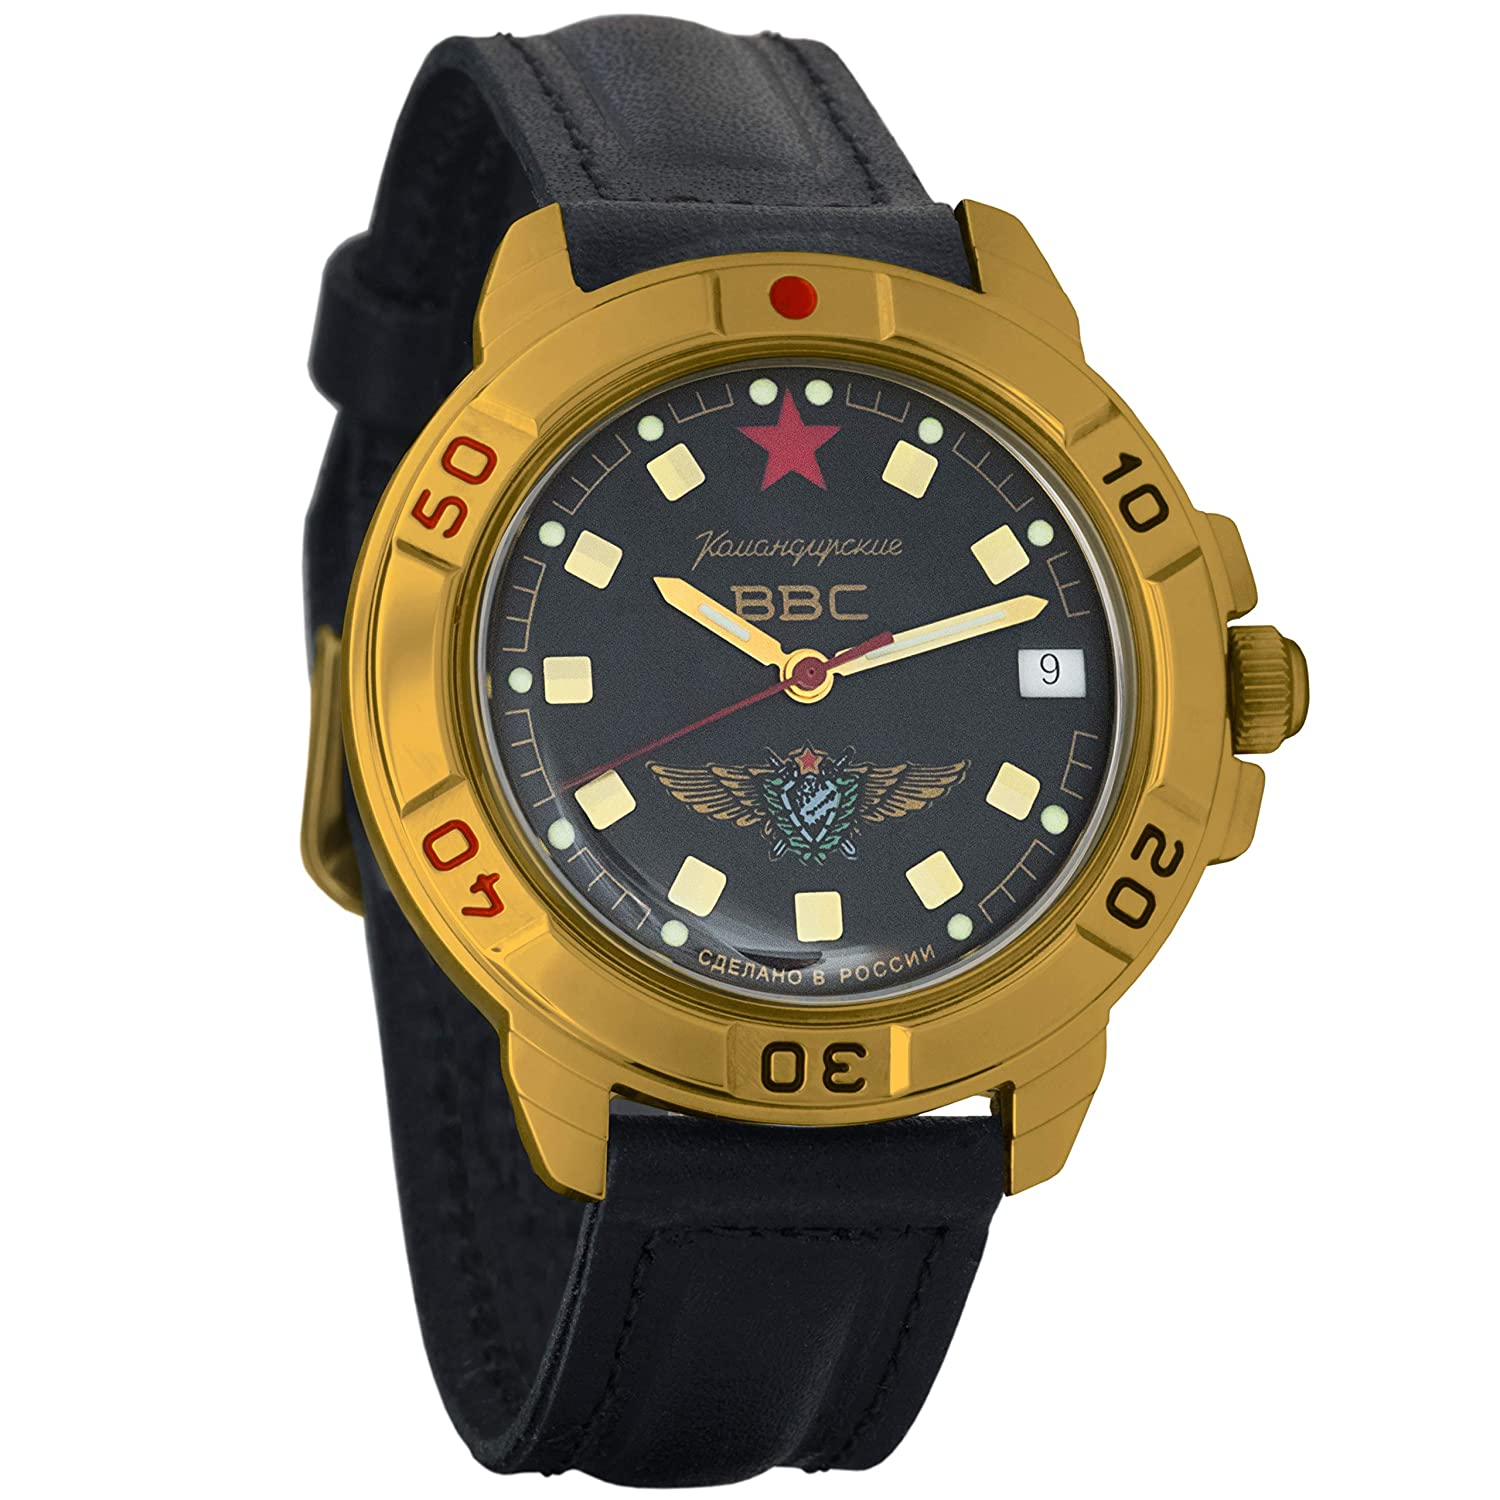 Amazon.com: Vostok Komandirskie Russian Air Forces Army Mechanical Mens Military Commander Wrist Watch #439313 (Black): Watches